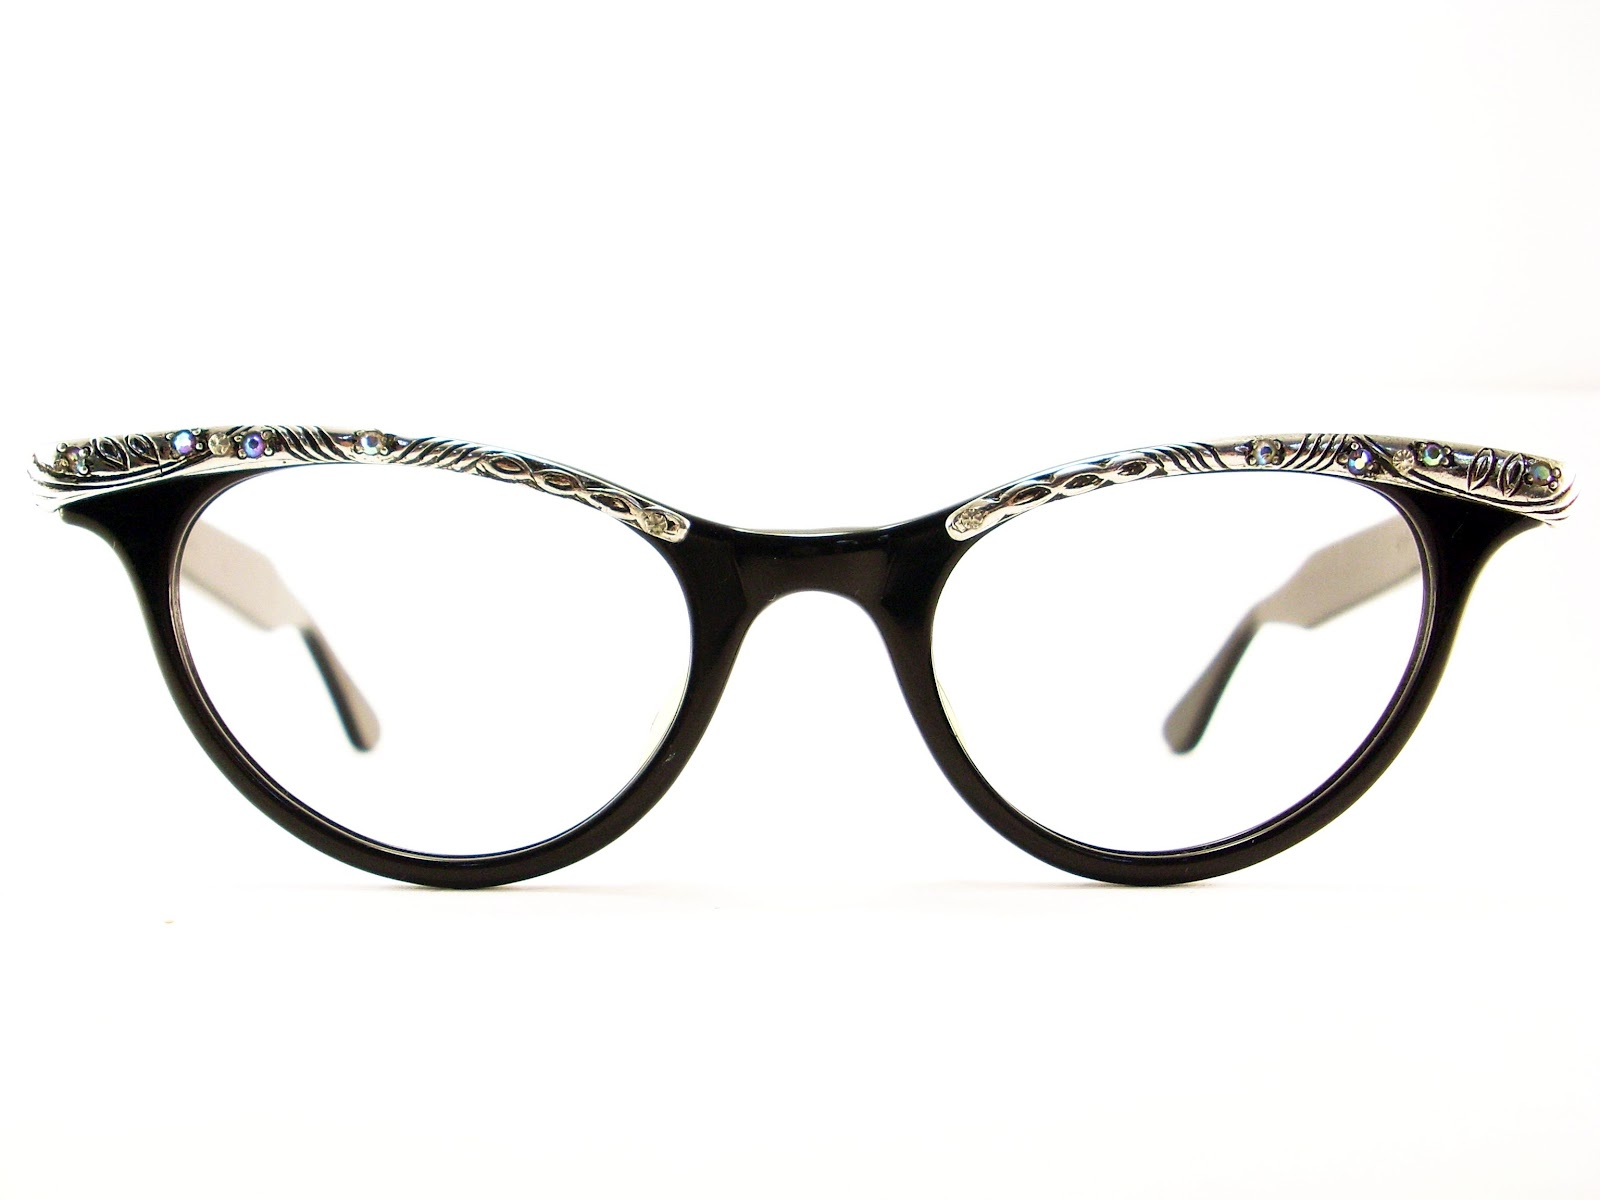 vintage cat eye glasses frame eyeglasses